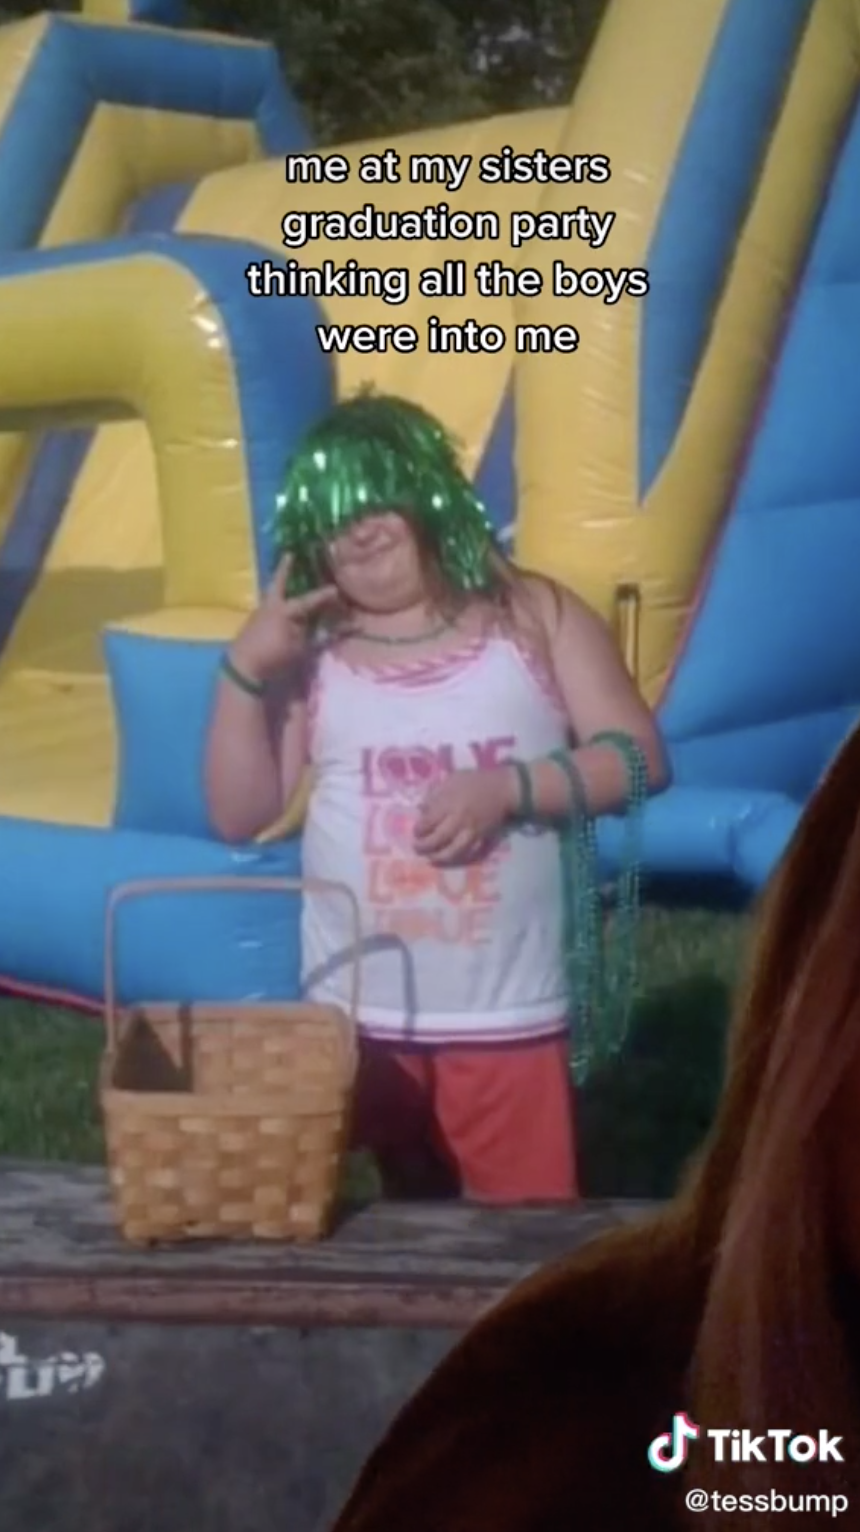 "@tessbump wearing a tinsel wig, beads around her wrist, a tank top that says ""Love, Love, Love, Love"" and throwing up the peace sign"